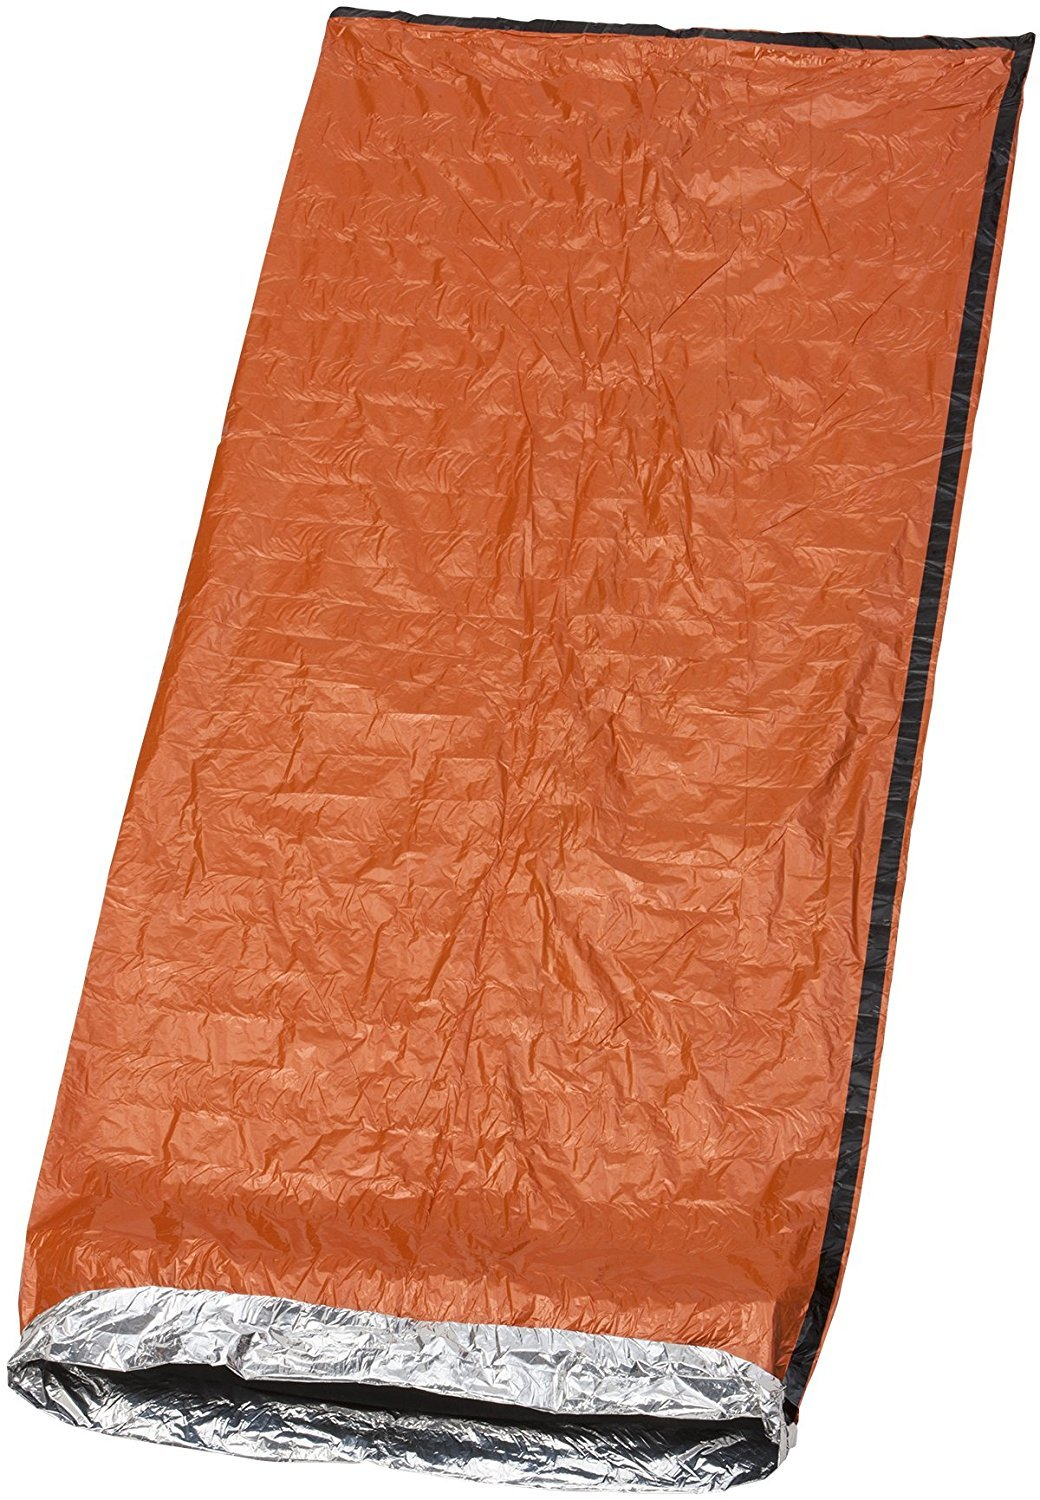 Bramble Emergency Bivvy Bag - Survival Sleeping Bag - Bushcraft - thermal Insulation Bright Orange Exterior, Reflective Lining Interior